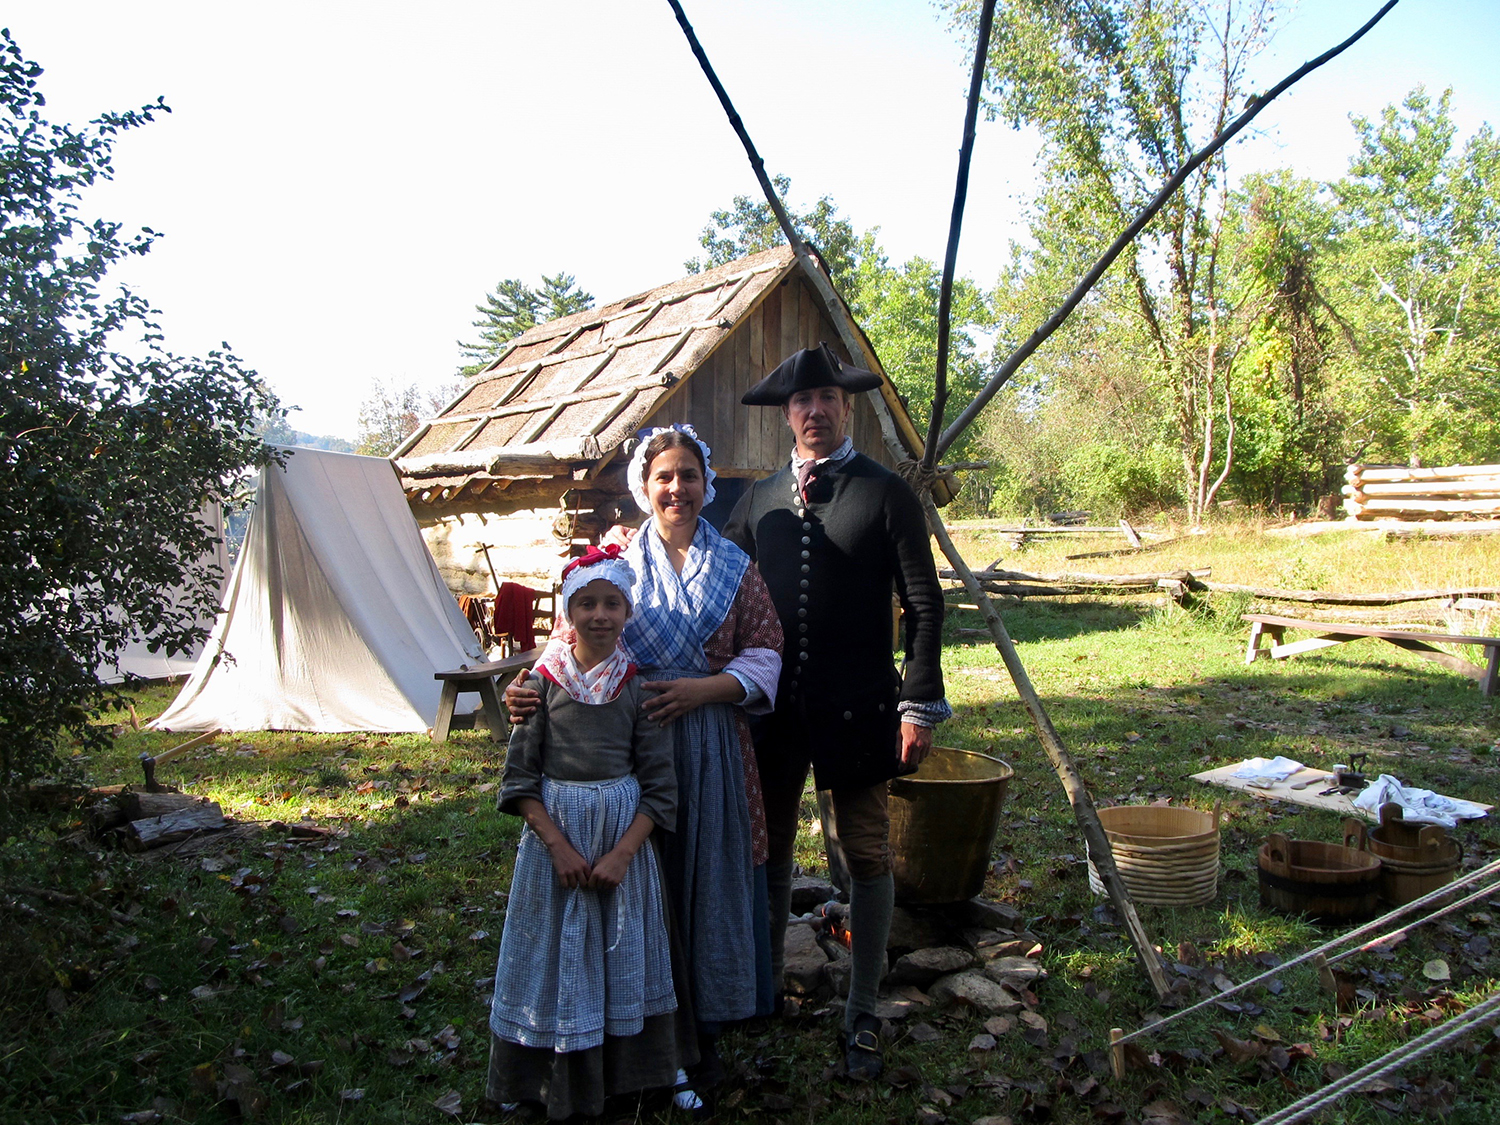 Living historian Elizabeth Hobbs and her family